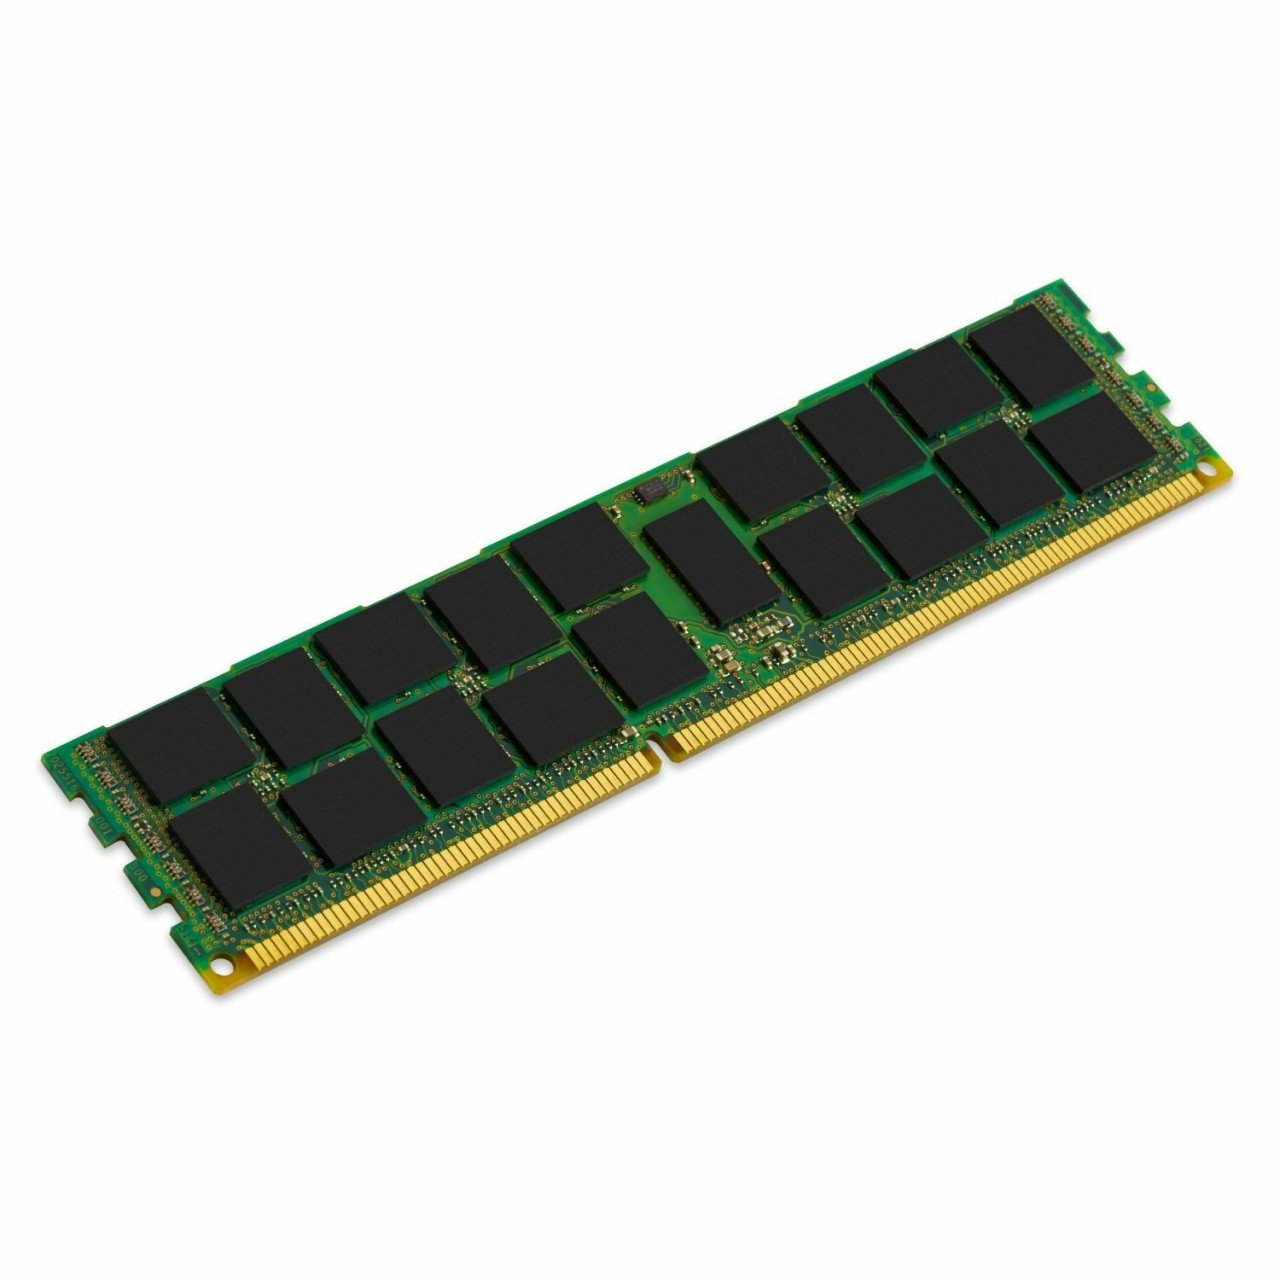 Kingston KVR16LR11S8/4I Memoria RAM da 4 GB, 1600 MHz, DDR3L, ECC Reg CL11 DIMM, 1.35 V, 240-pin, Certificata Intel